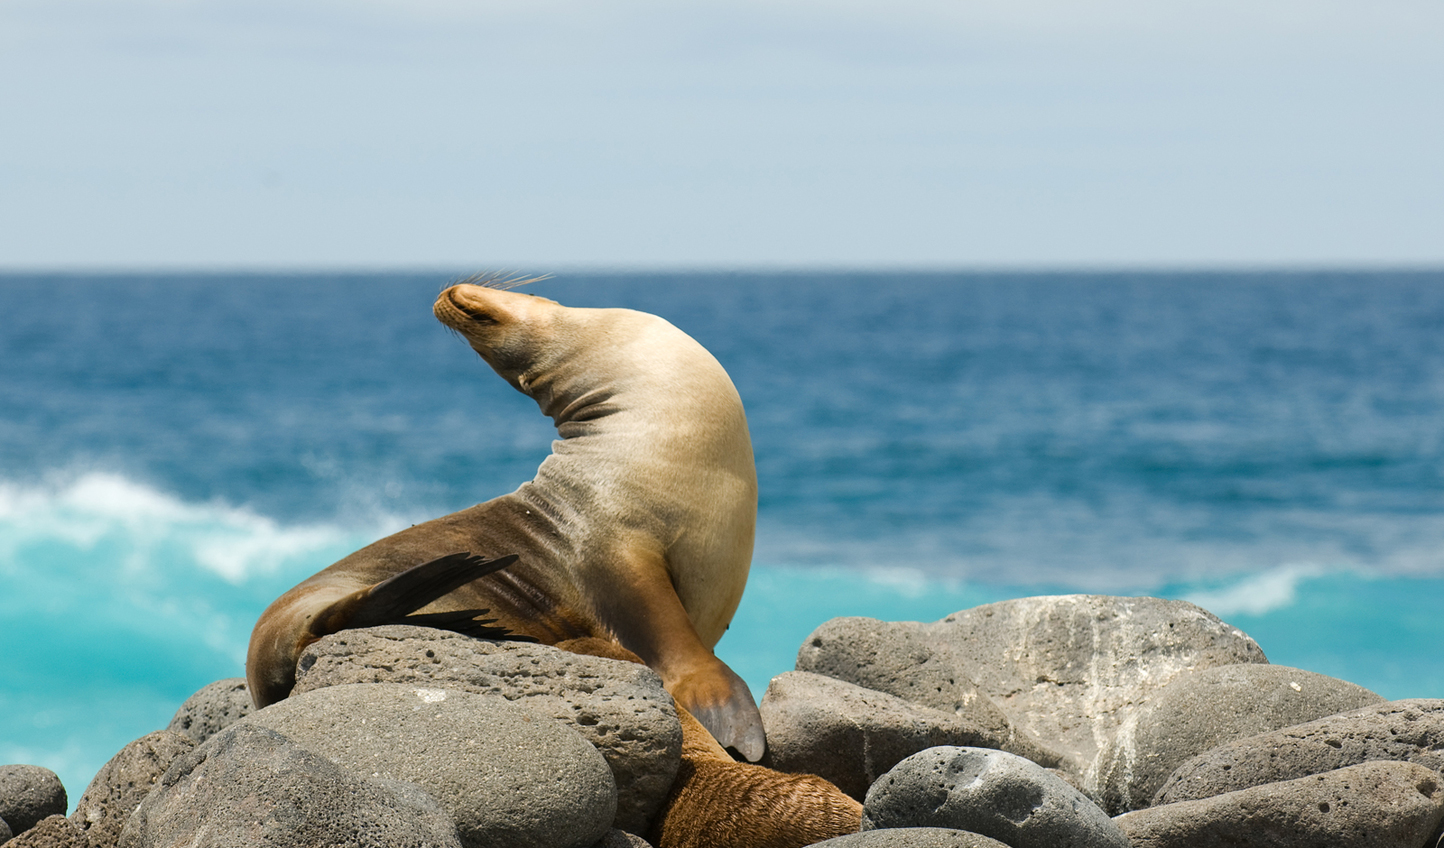 A cheeky sea lion in the Galápagos Islands